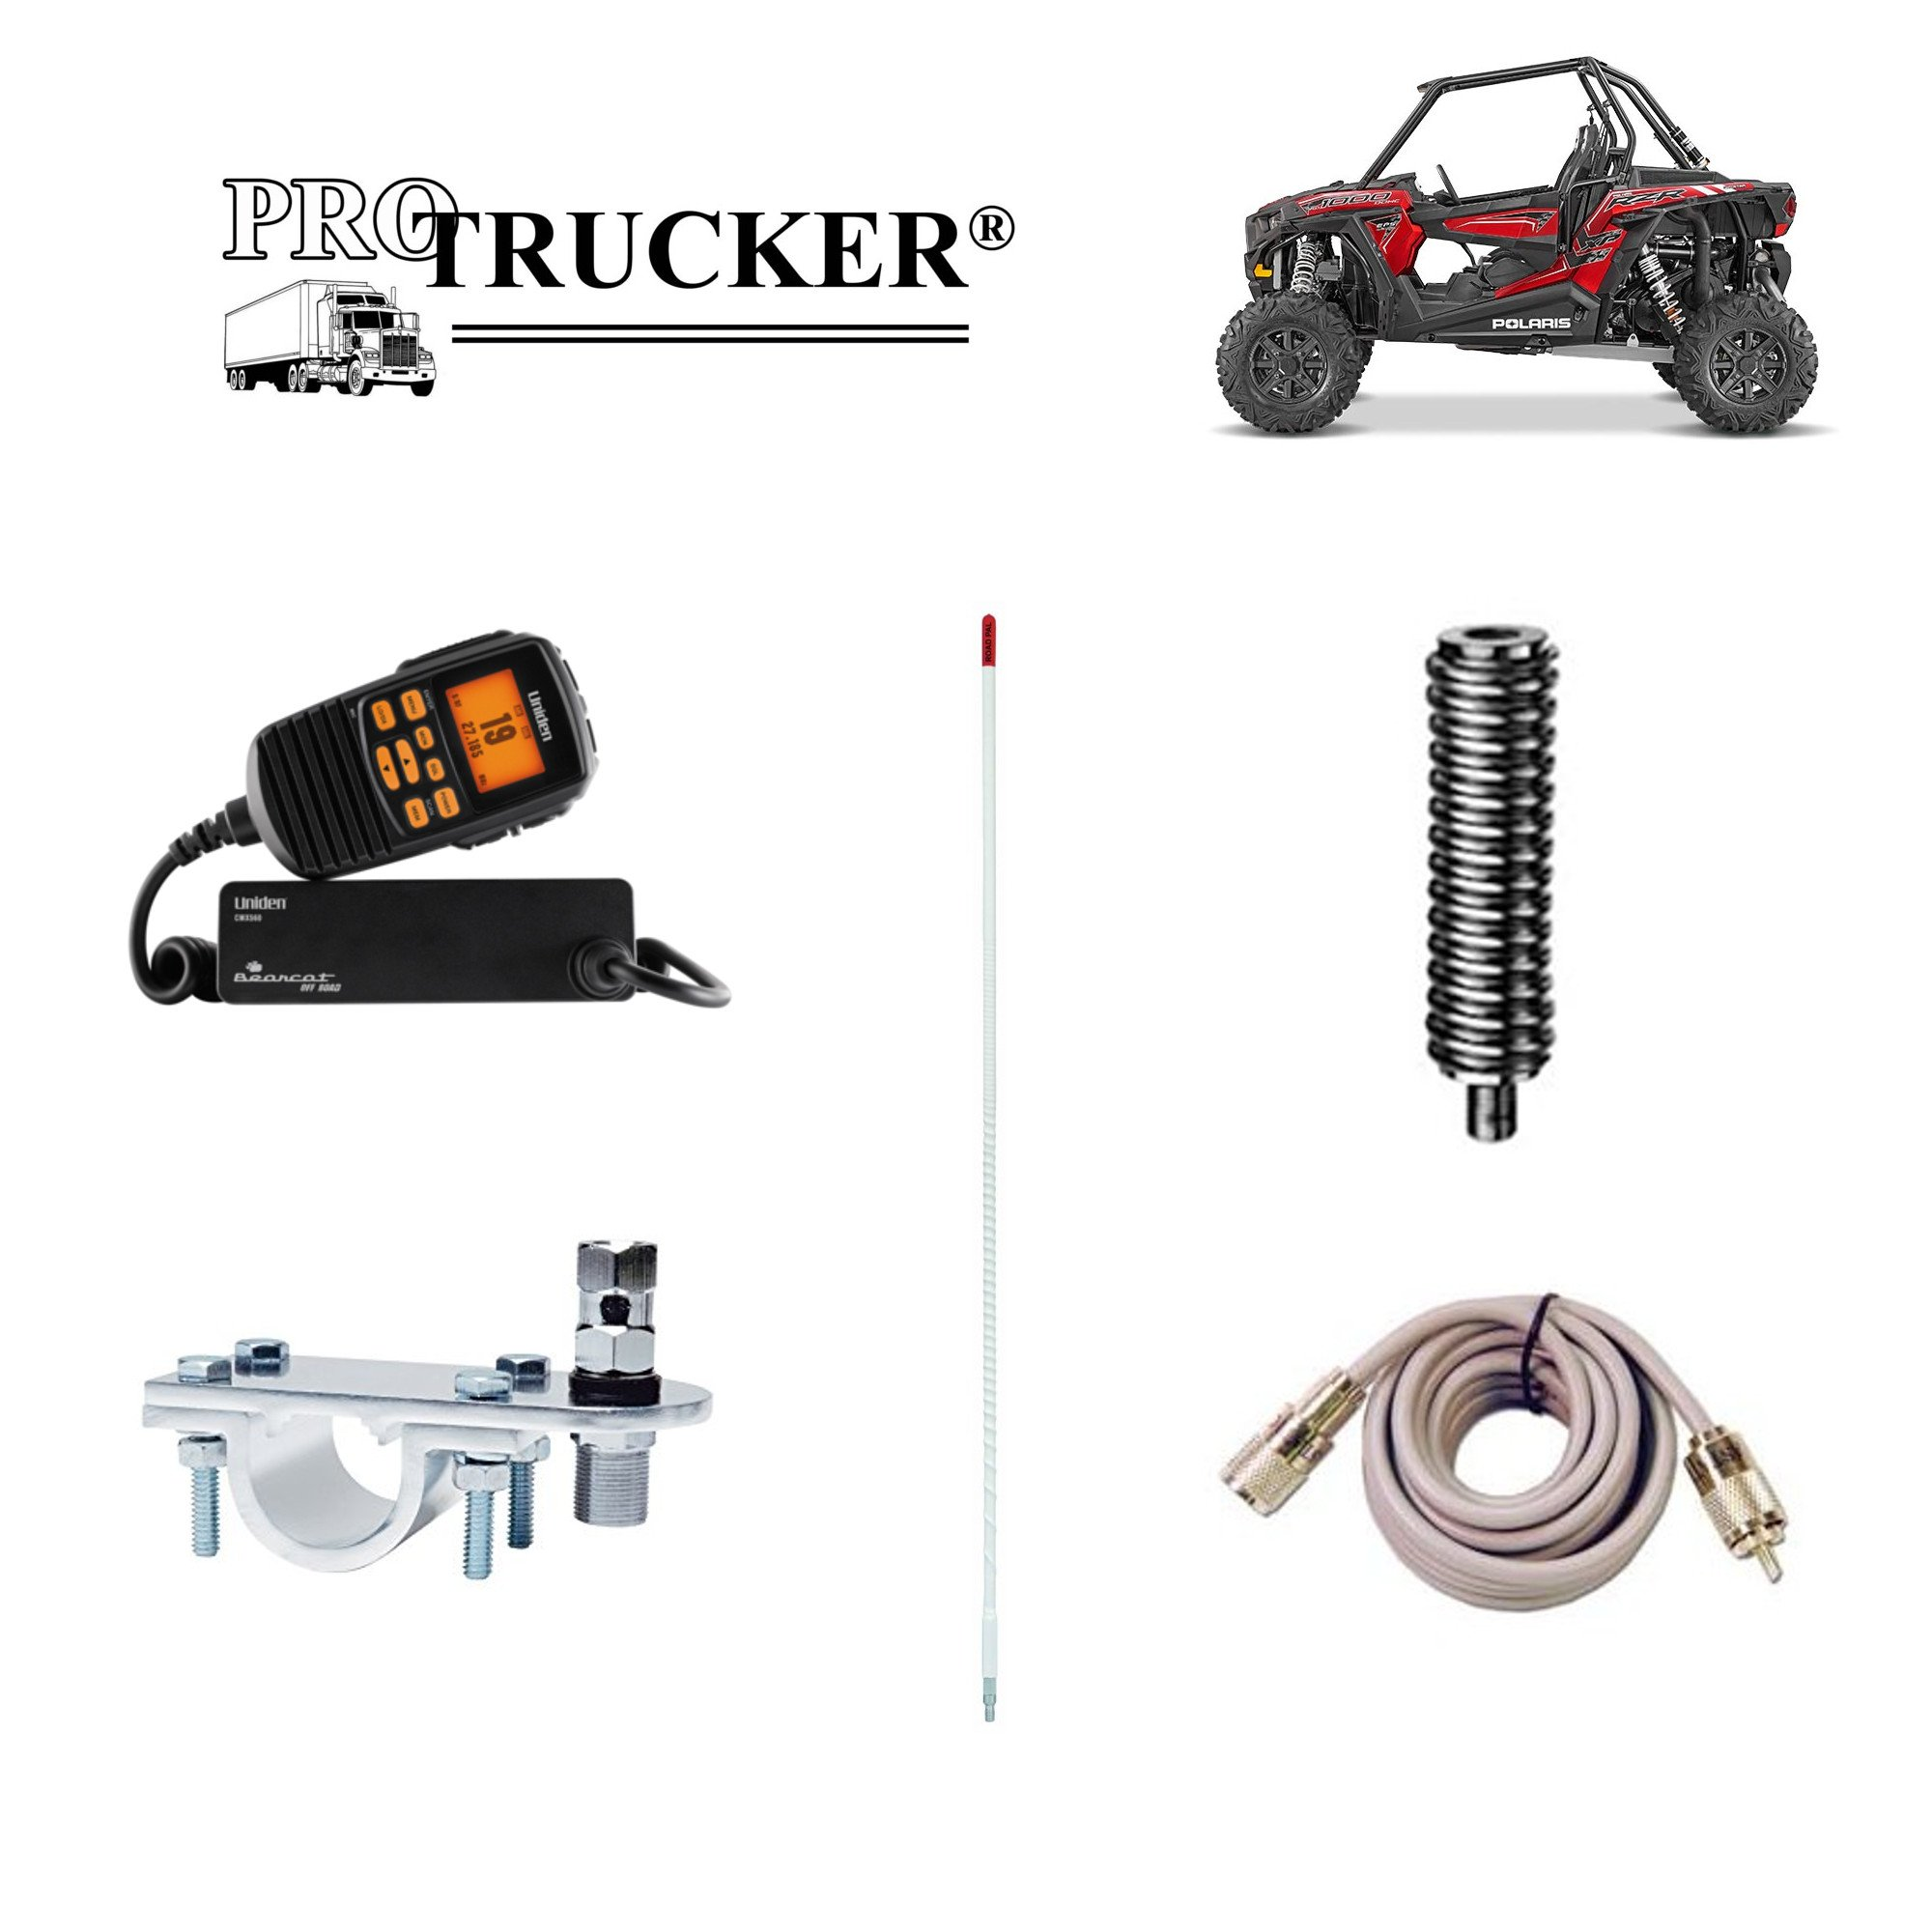 Pro Trucker Off-Road ATV, Tractor, UTV, RZR, And Jeep Kit With Uniden Handheld CB Radio, 4' White Antenna, Antenna Mount & Stud, Spring, and Coaxial Cable - Includes Everything by Pro Trucker (Image #1)